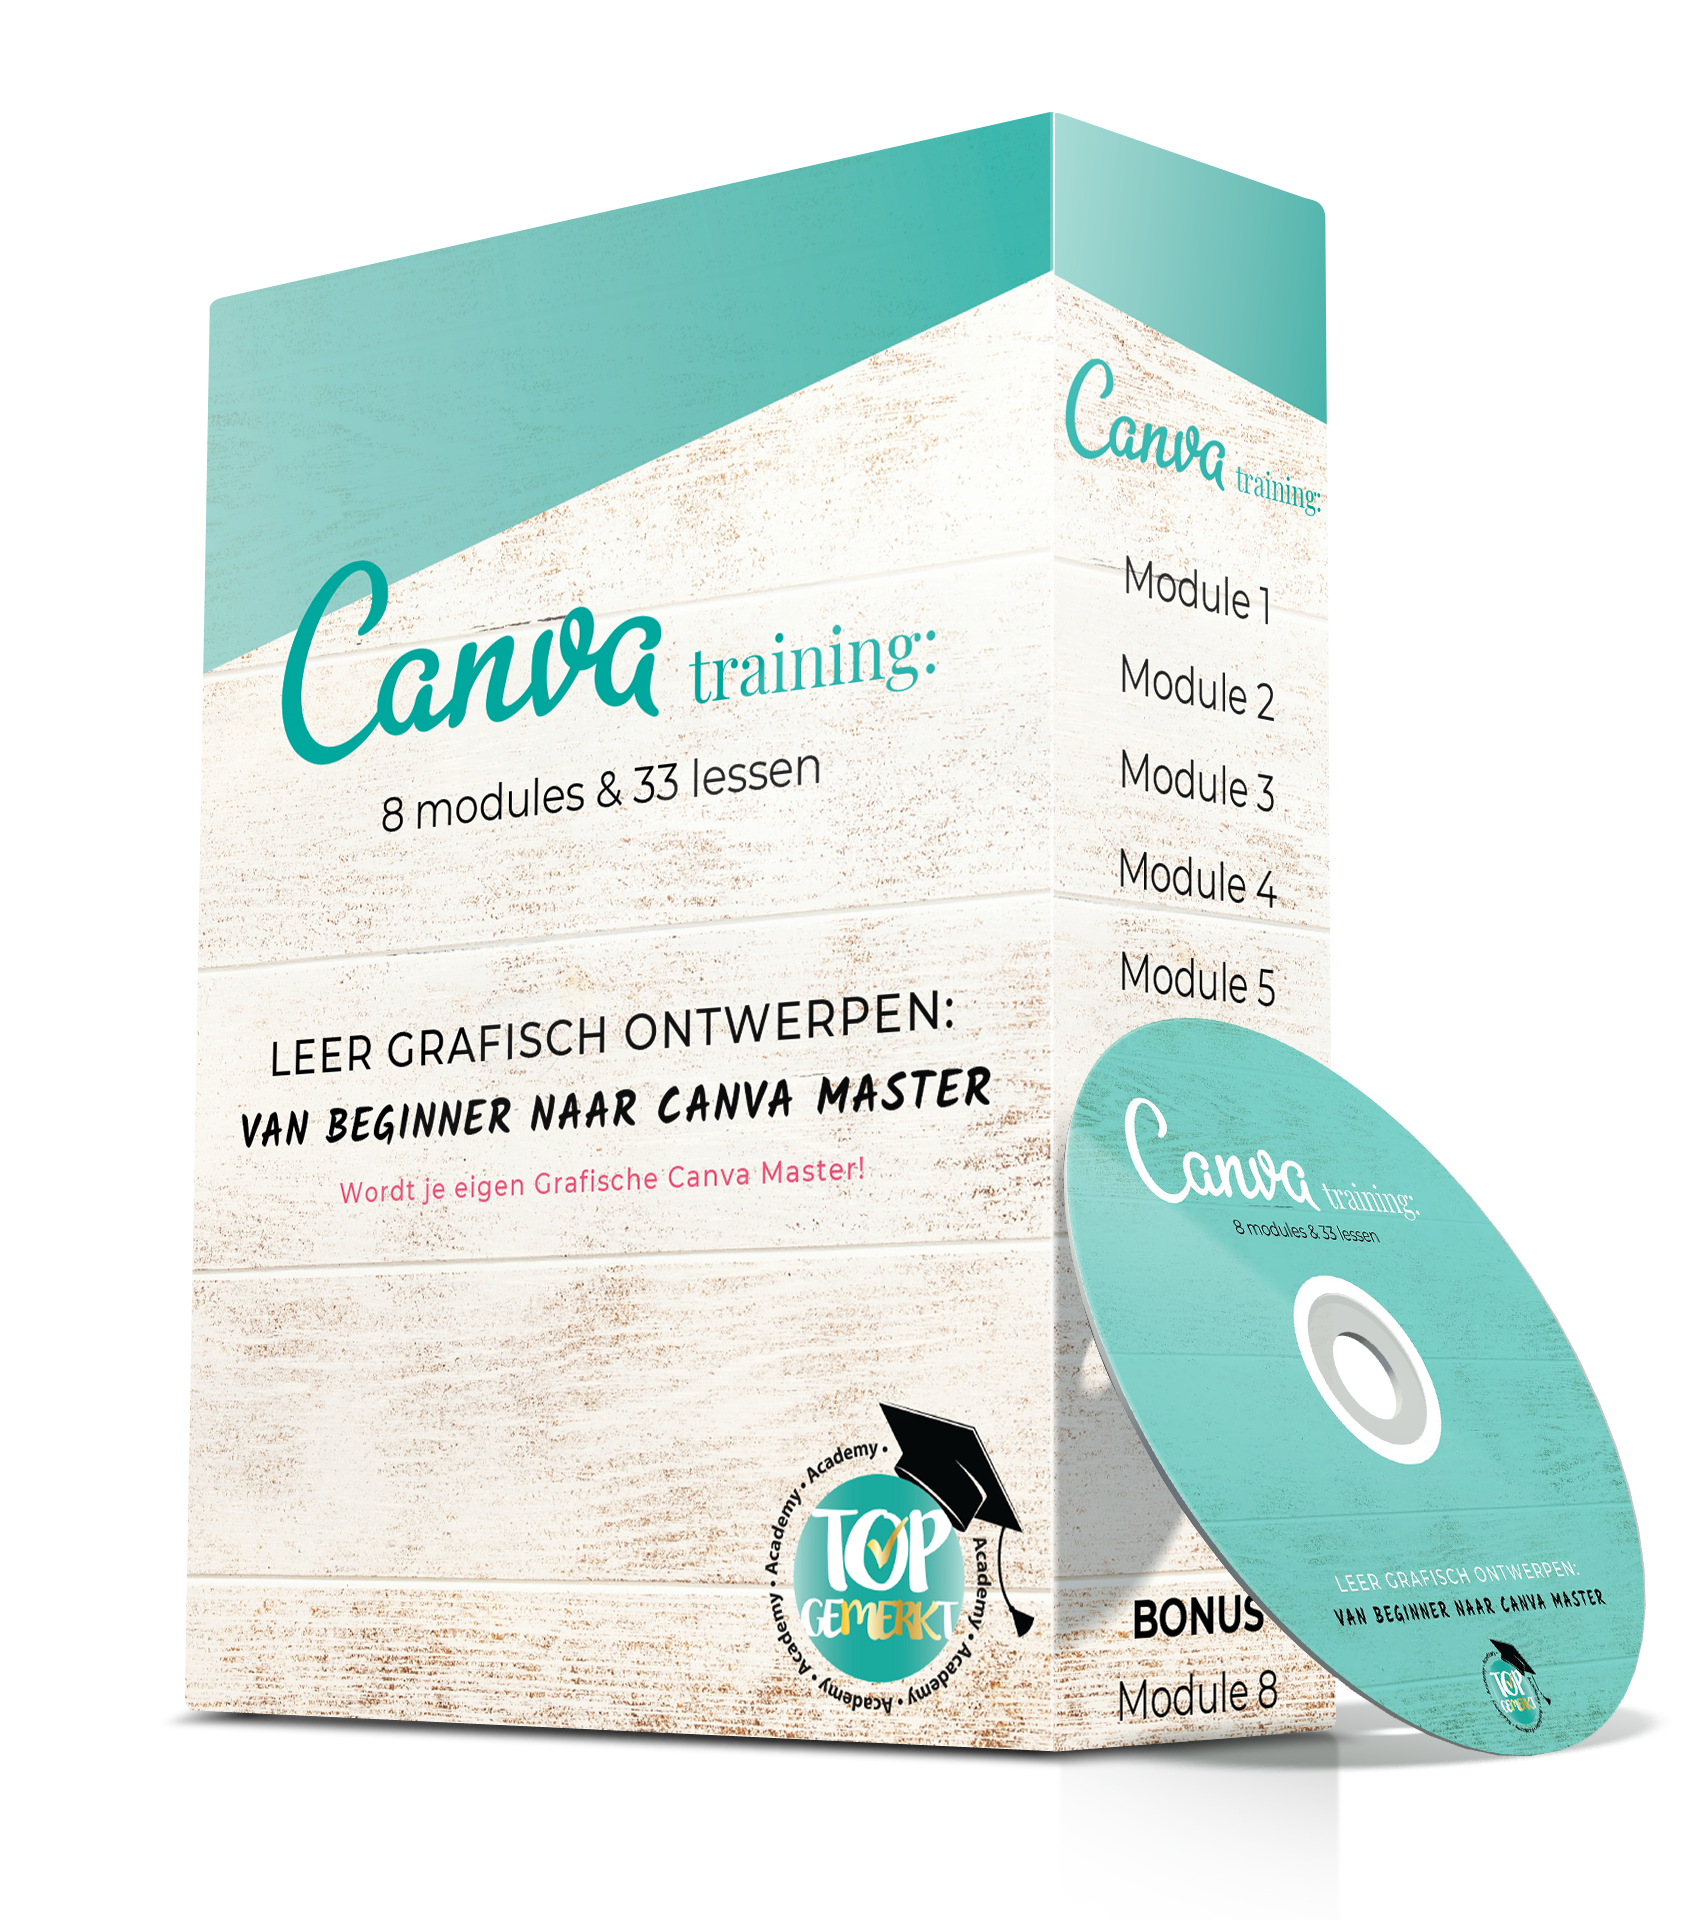 Online Canva Training - Van Beginner Naar Canva Master